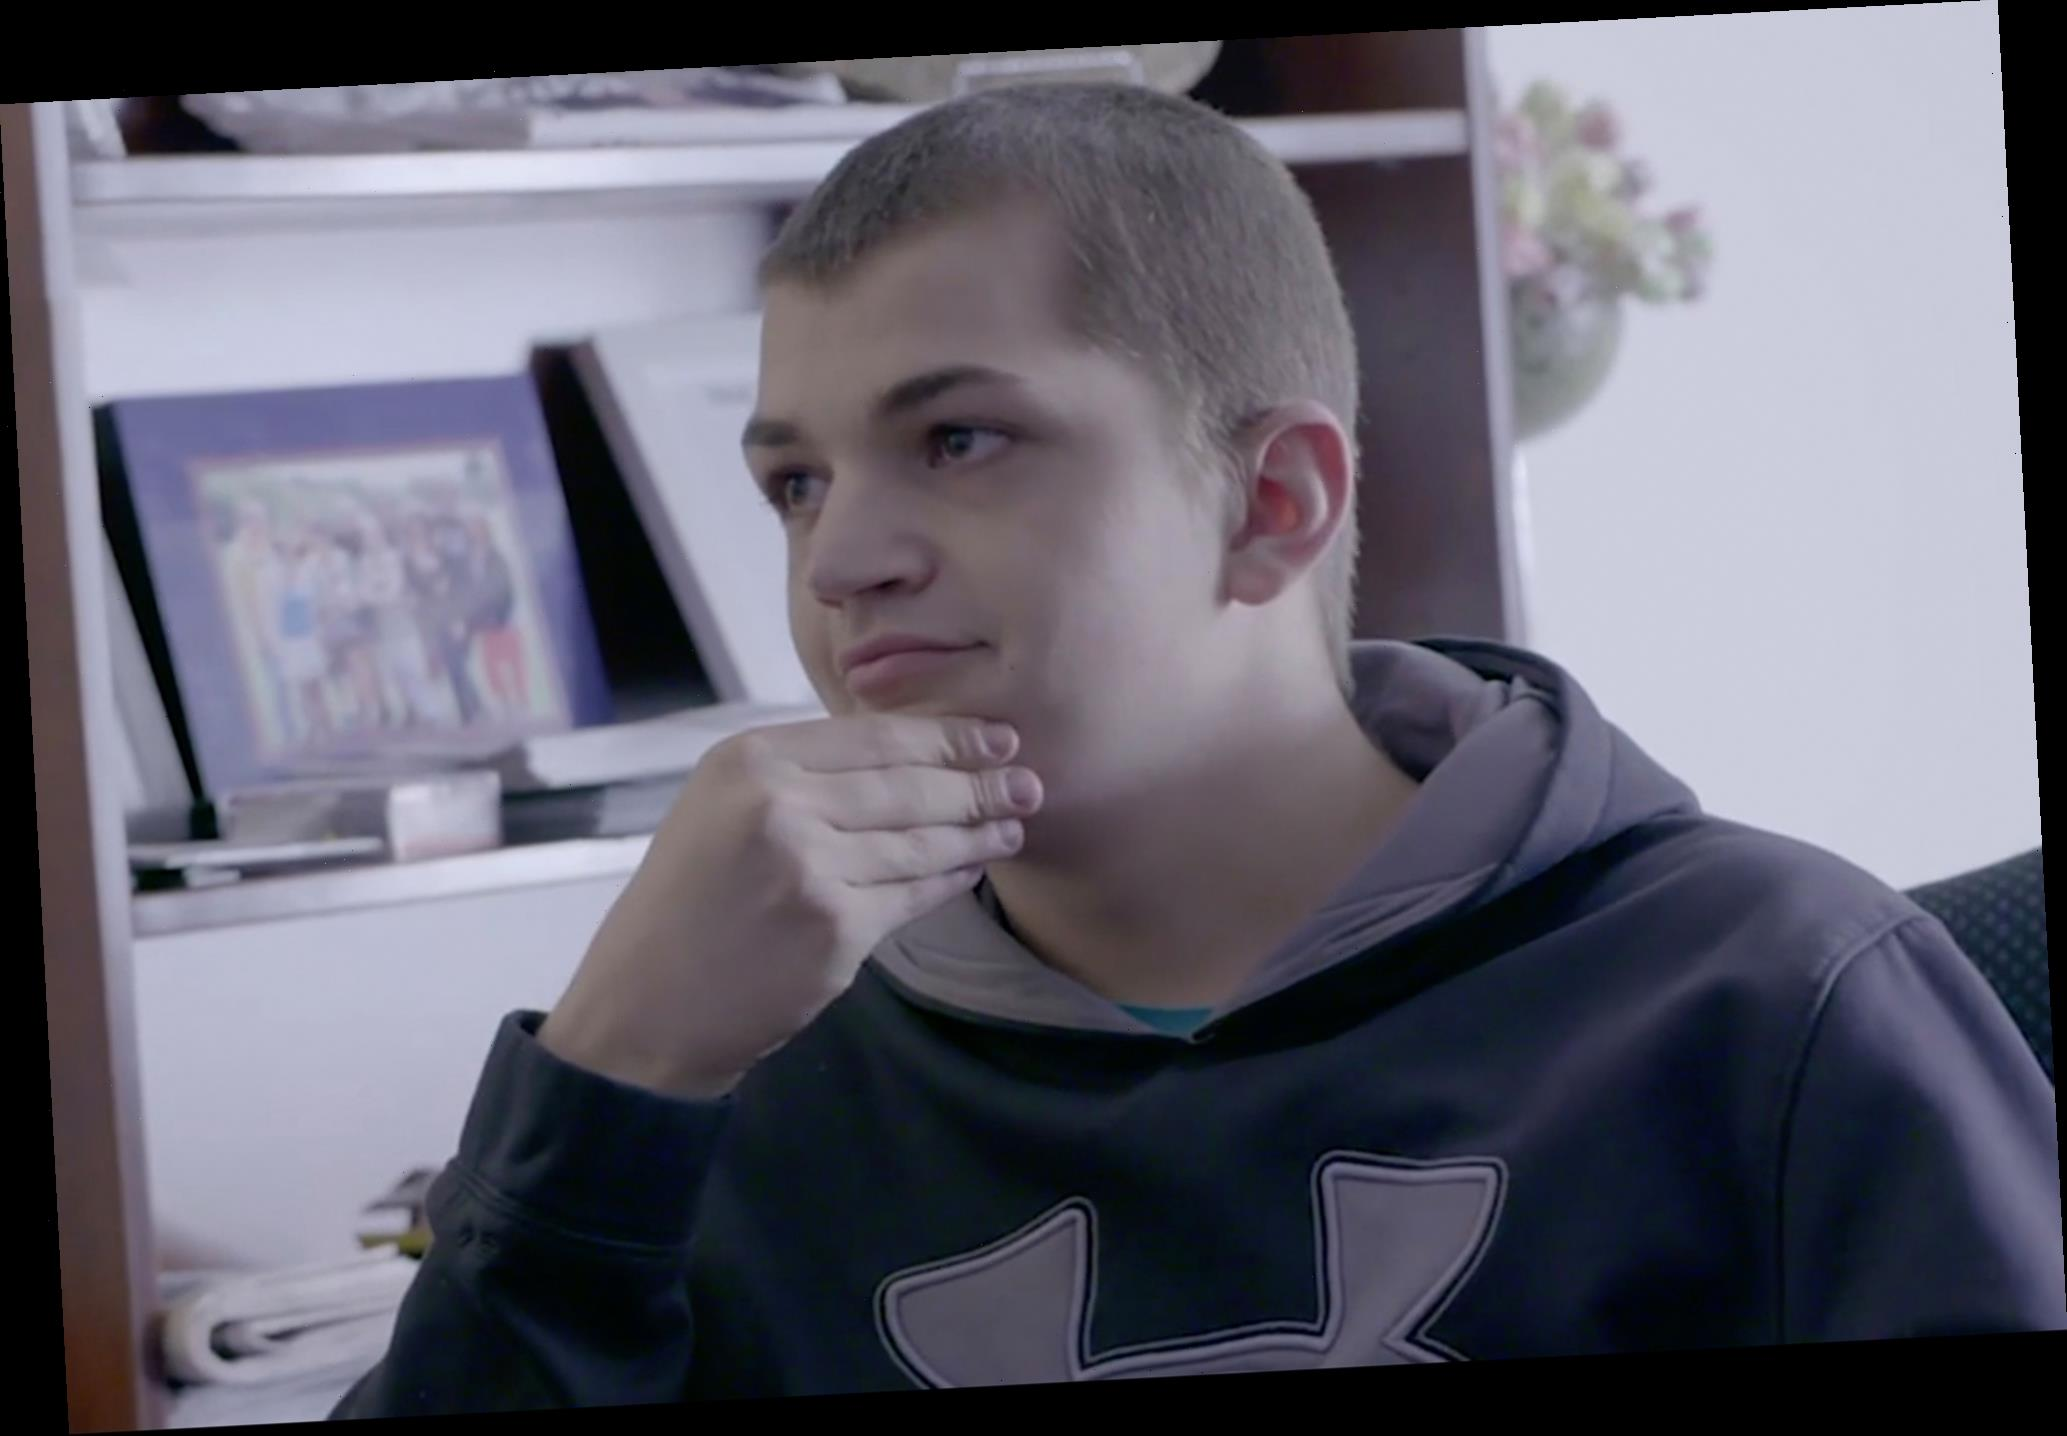 A gut-wrenching glimpse inside a high school for recovering teen addicts